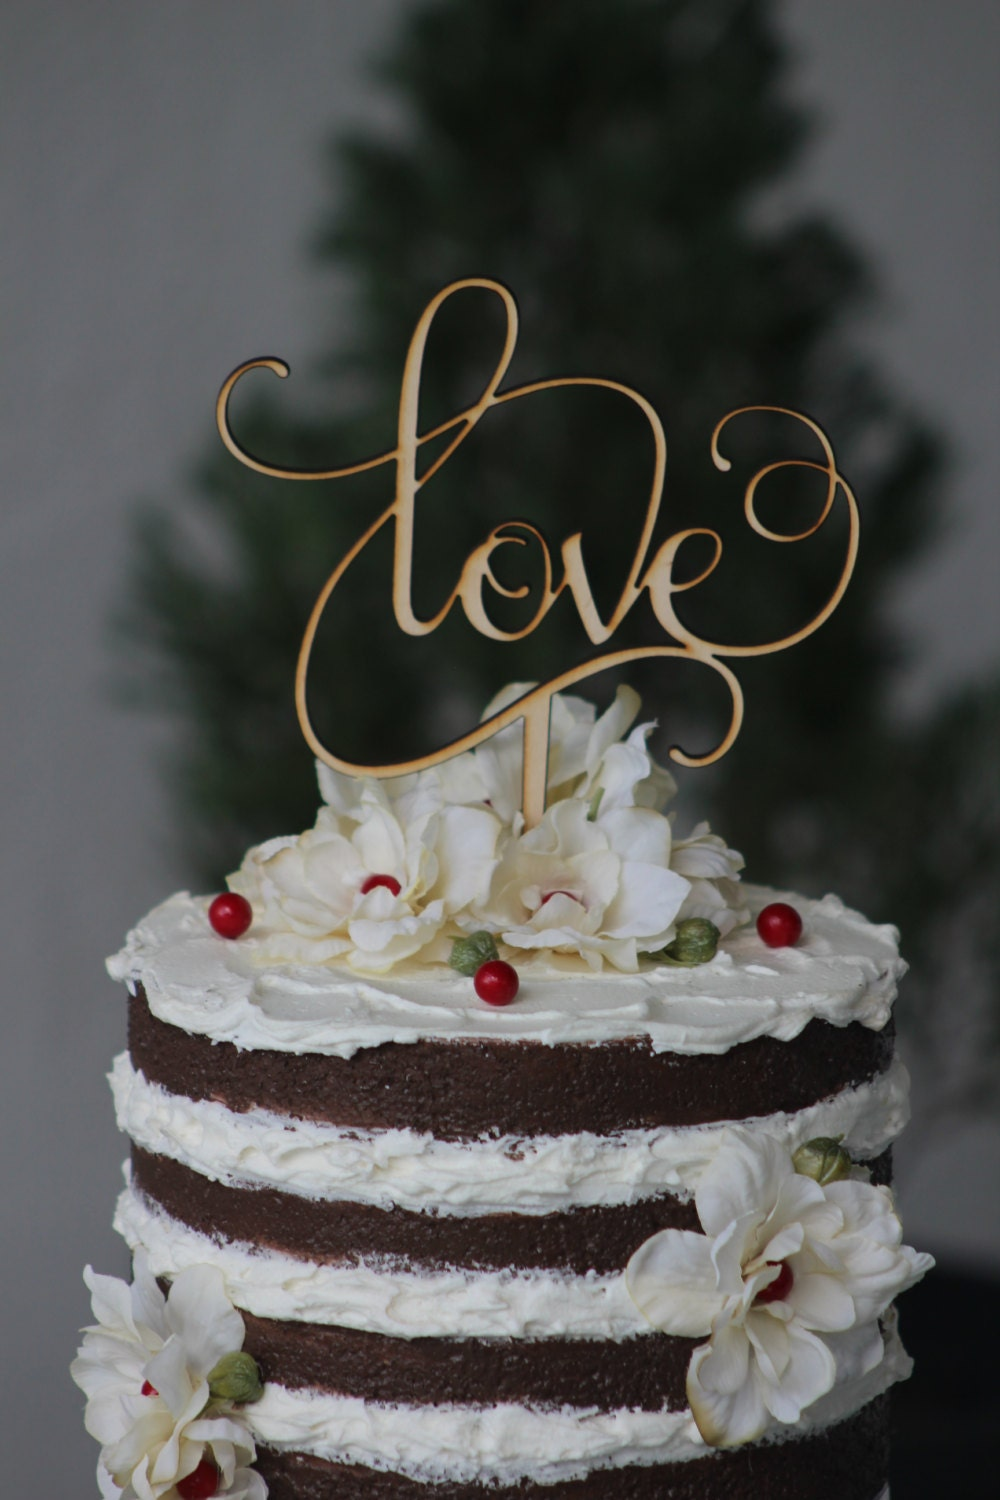 Etsy Love Cake Topper